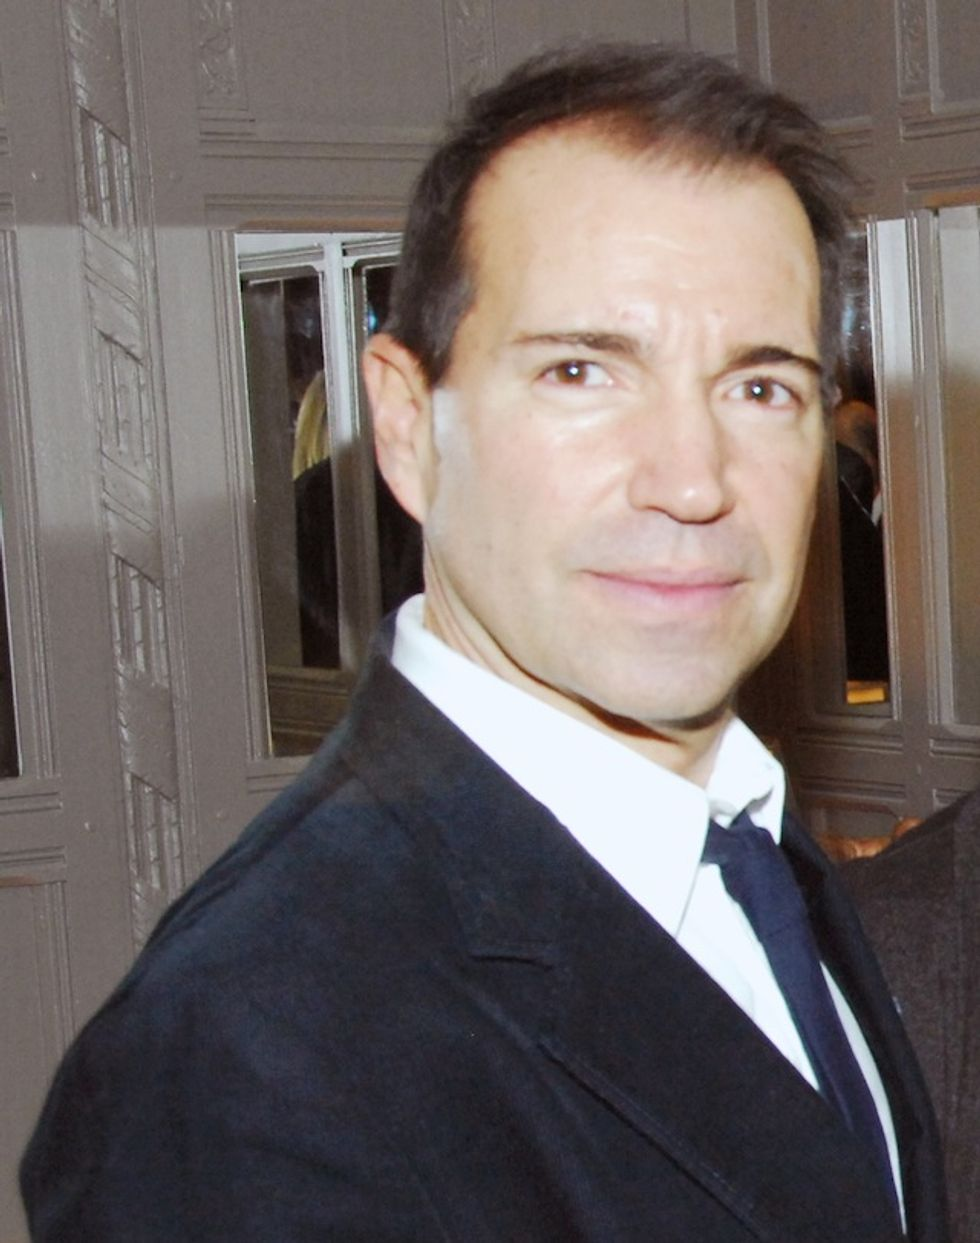 Richie Notar on Studio 54, His Plans for Lenox Lounge and His New Restaurant